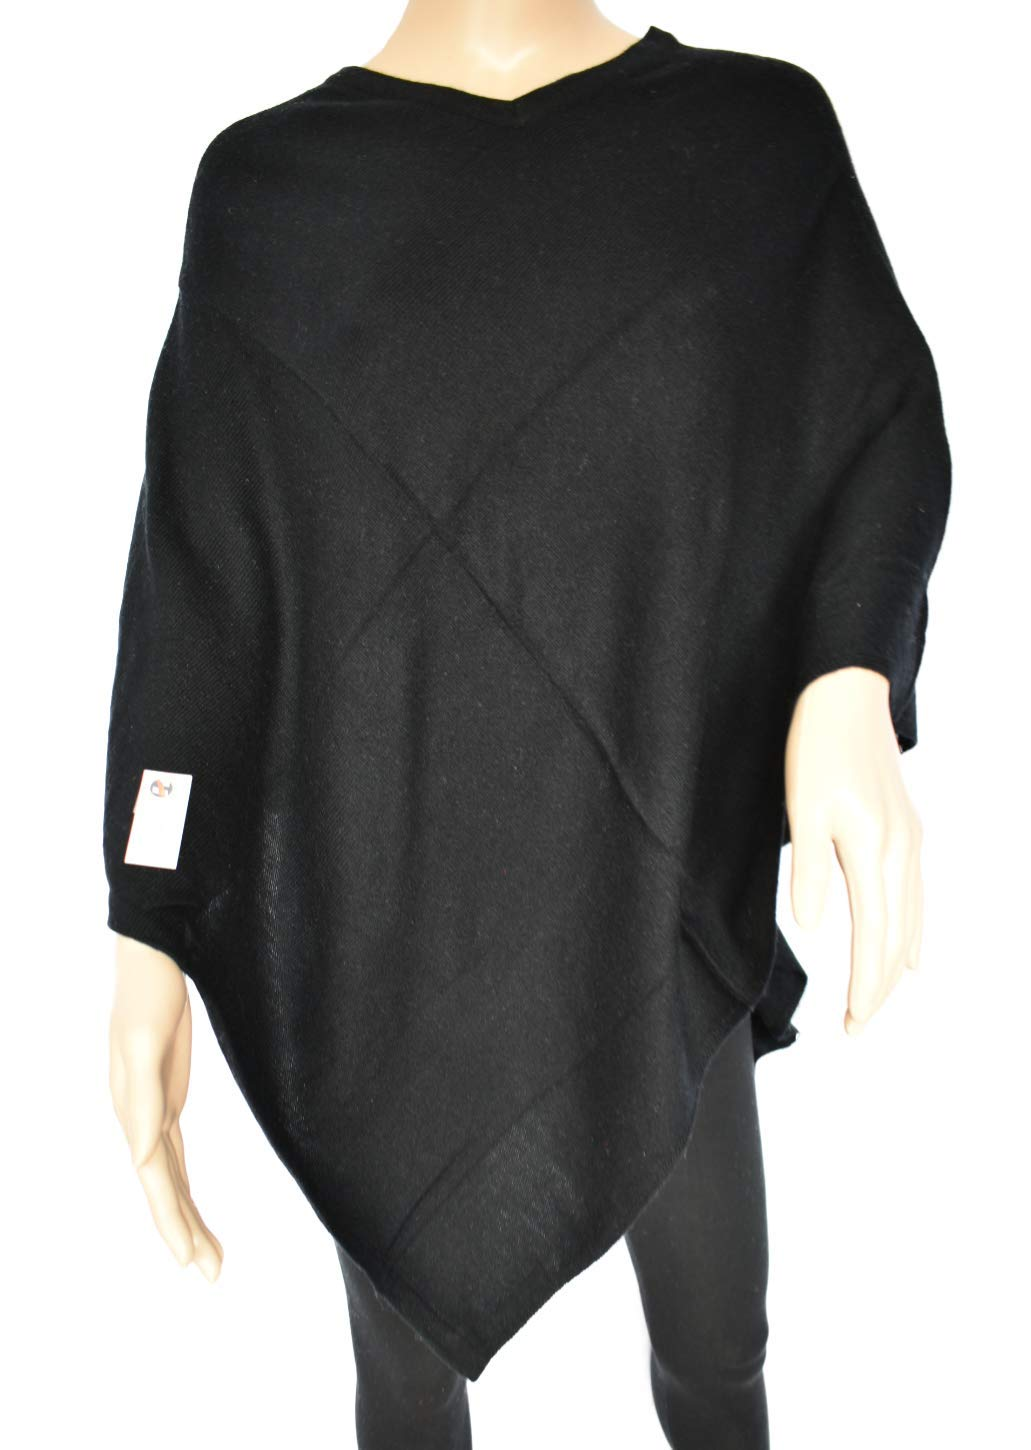 Exclusive Cashmere Poncho -Royal Blue Color Cashmere - Handmade in Nepal (Black)